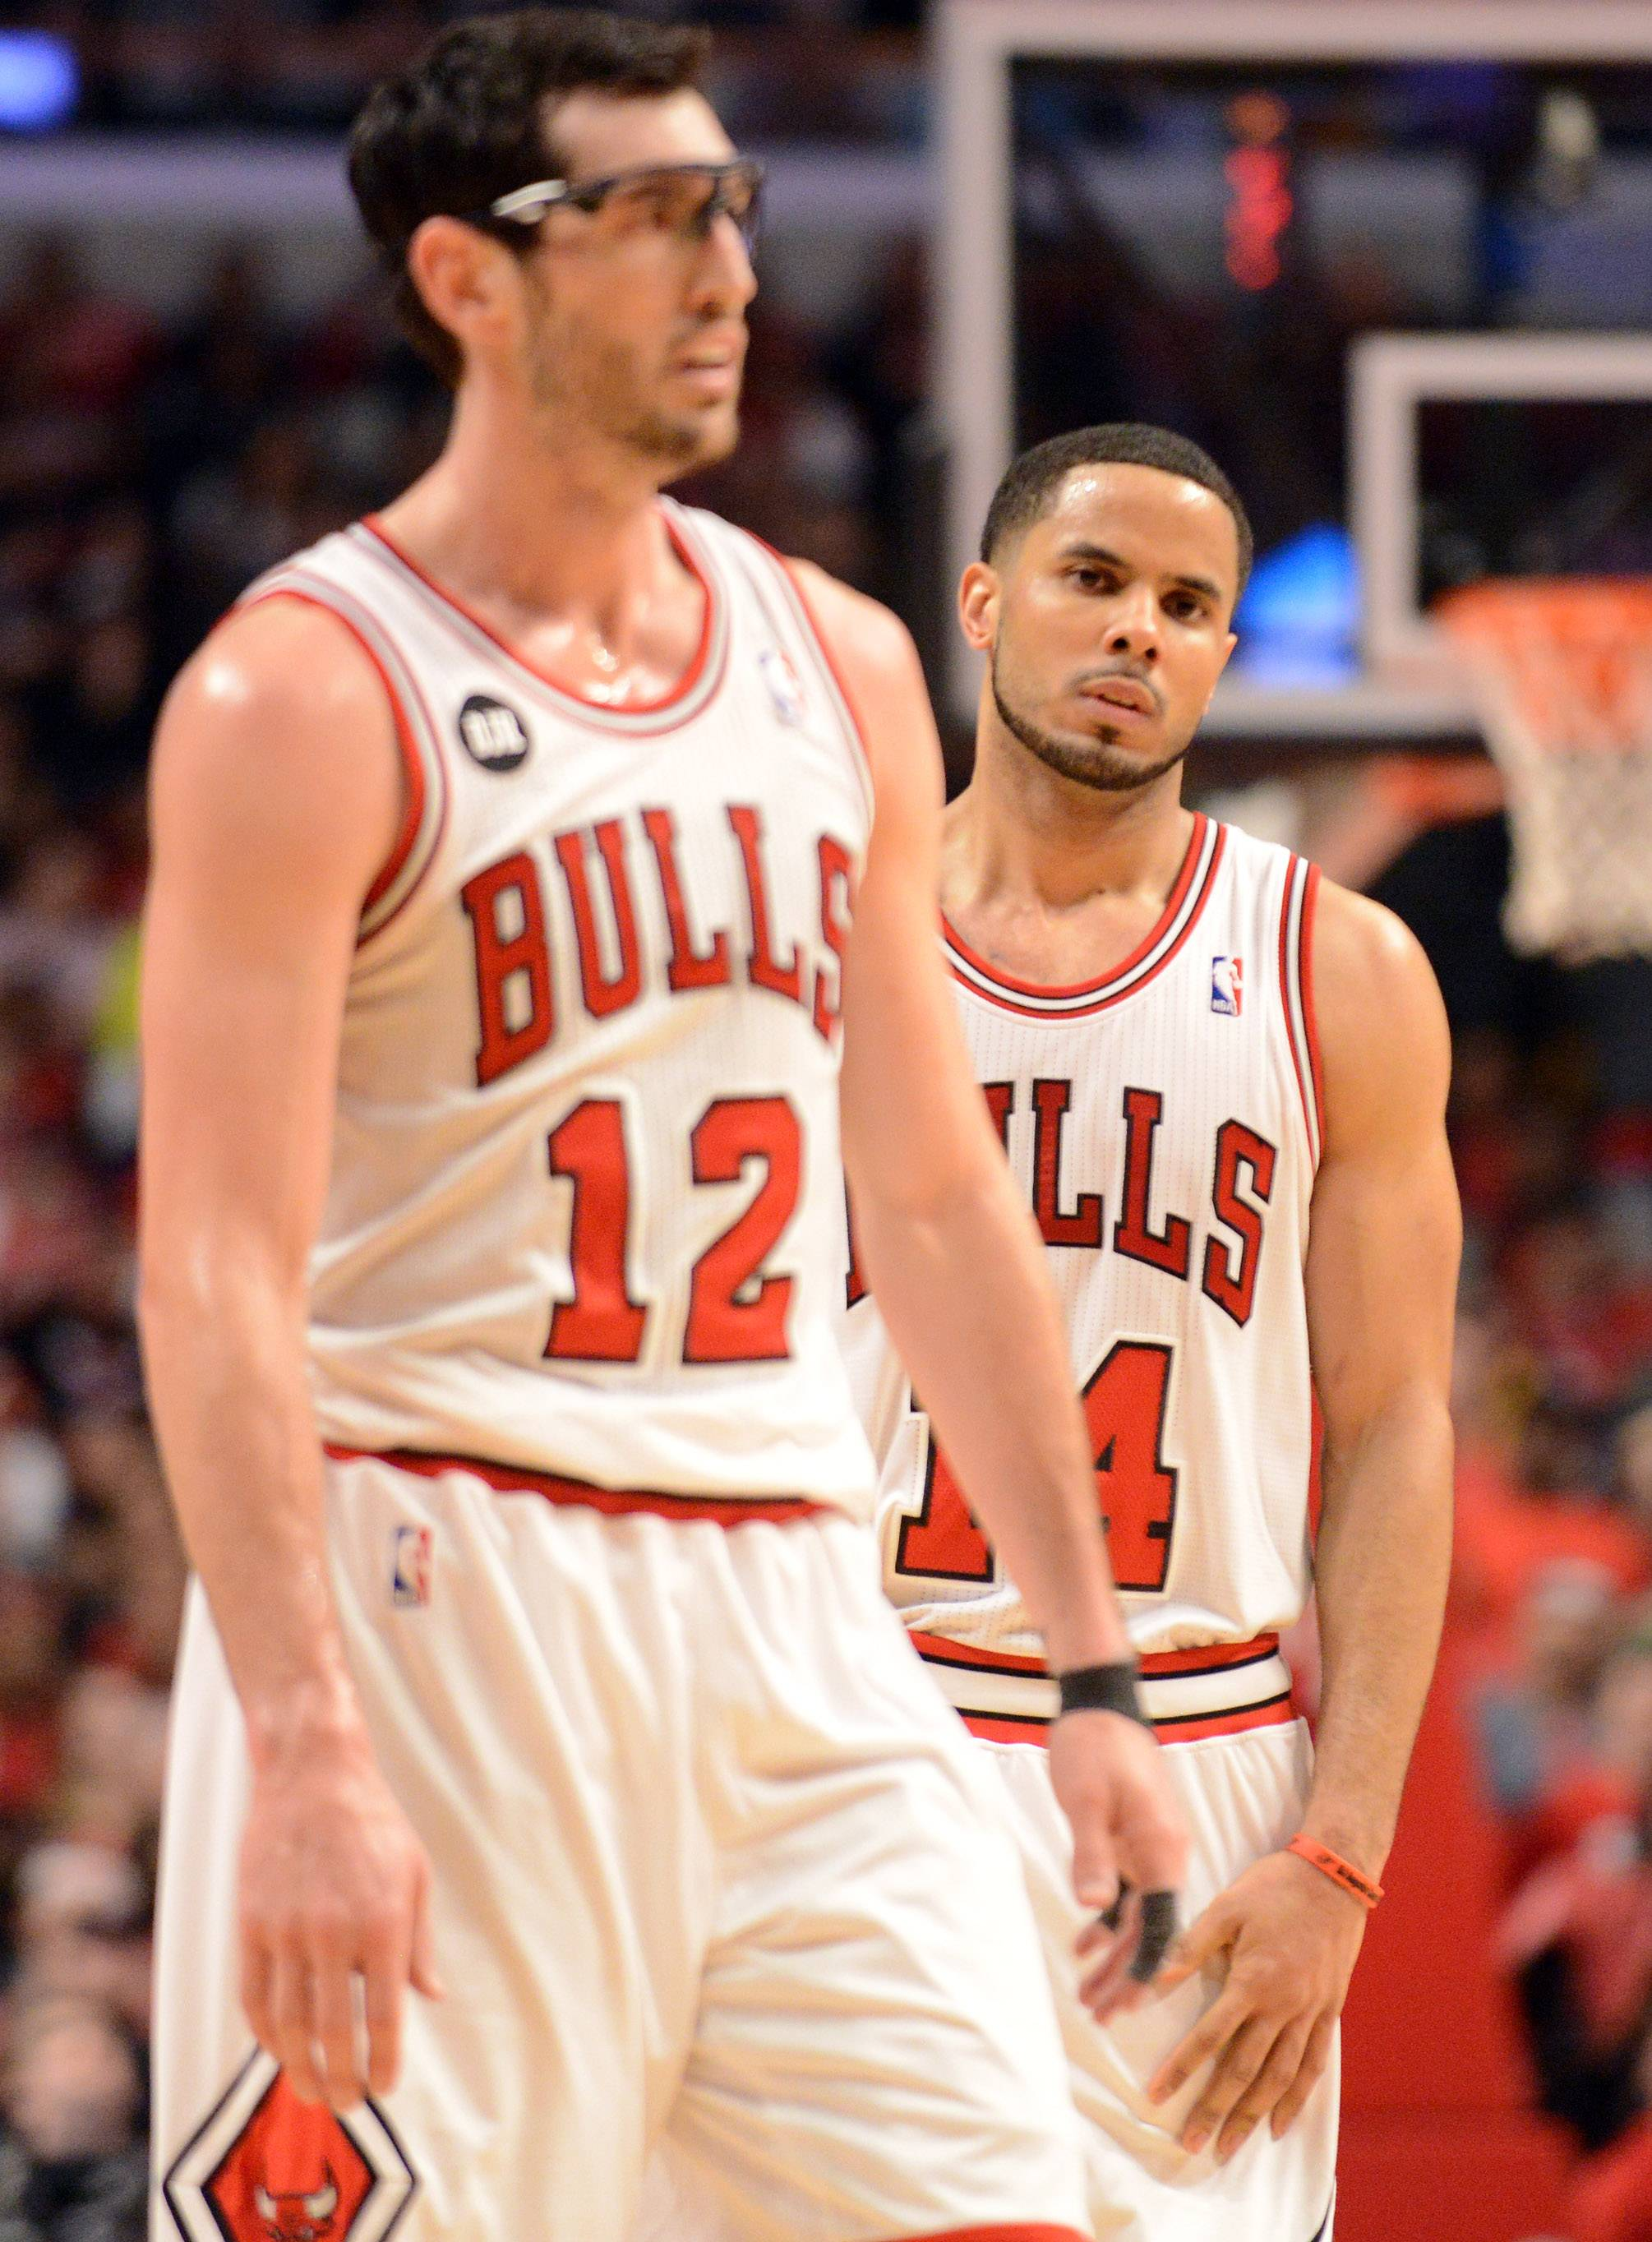 Chicago Bulls guards Kirk Hinrich (12) and D.J. Augustin (14) walk back upcourt as the game slips away in overtime .